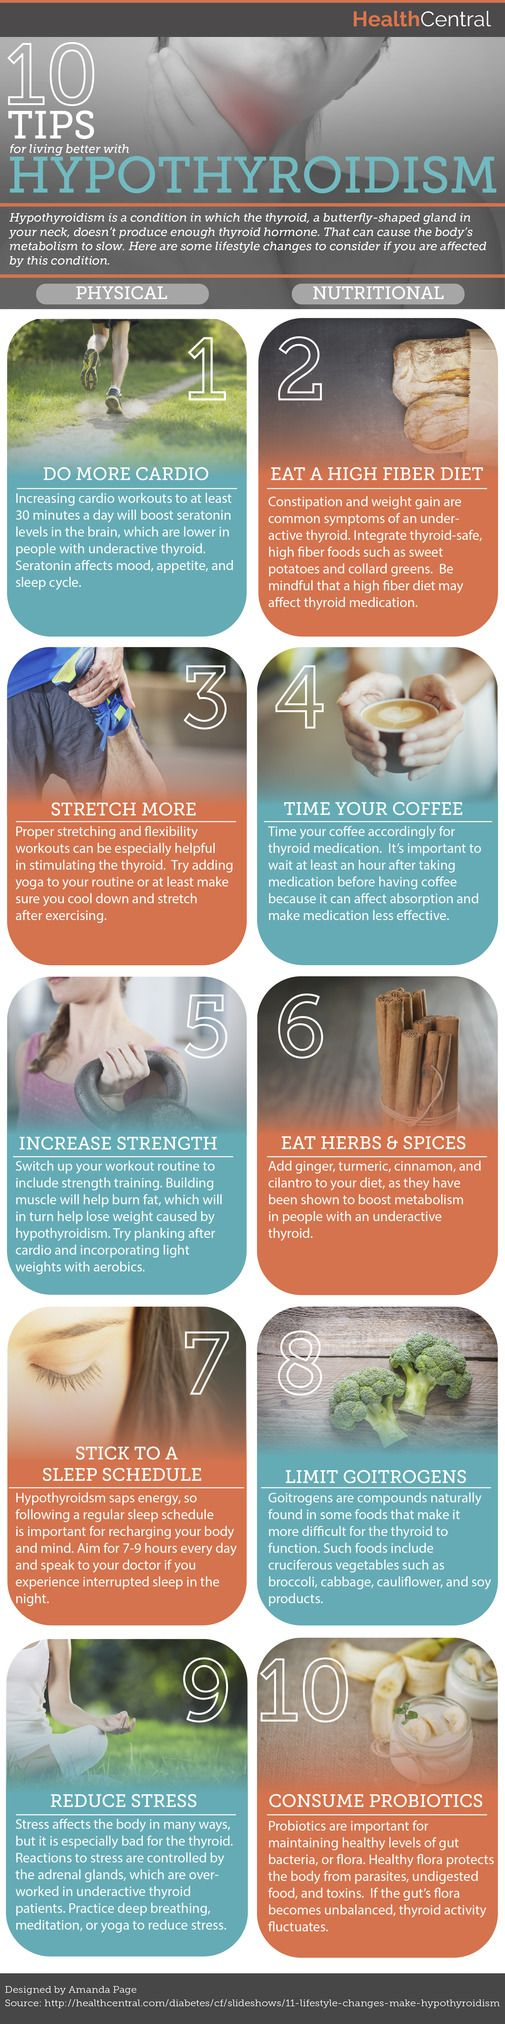 10 Tips for Living Better With #Hypothyroidism (INFOGRAPHIC)